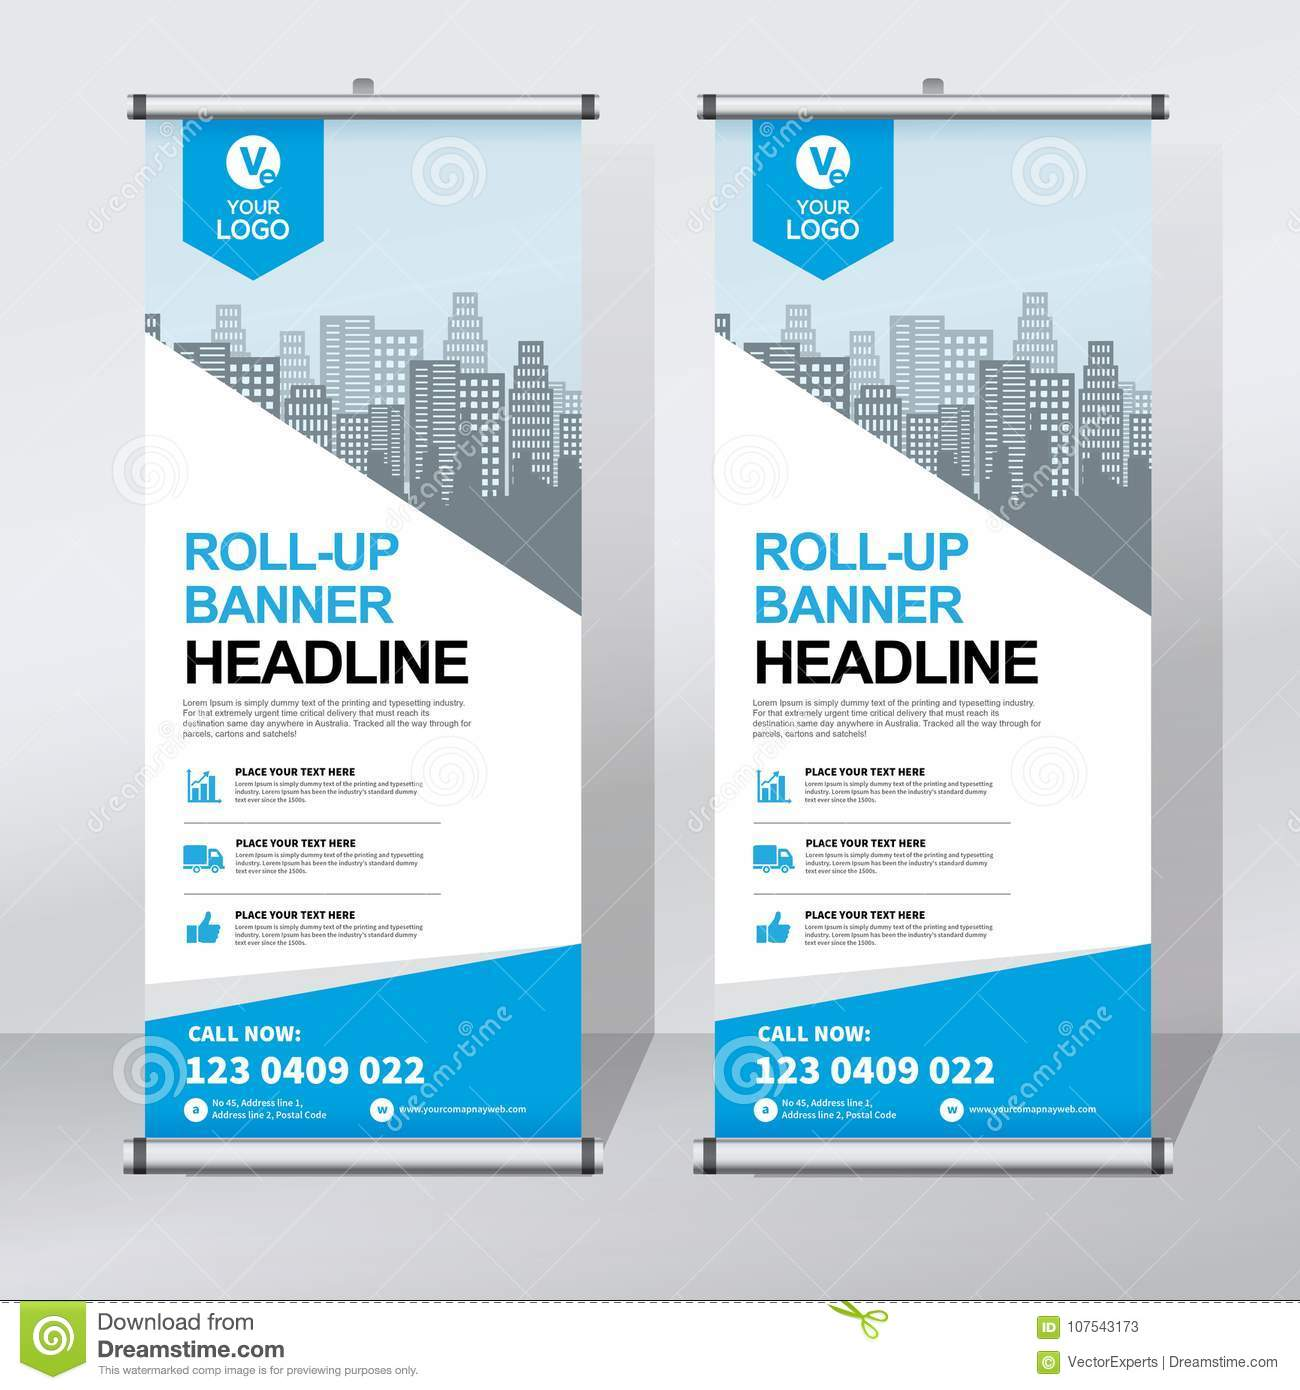 This is a professional roll up banner template for illustrator from www.themzy.com. Roll Up Banner Design Template Vertical Abstract Background Pull Up Design Modern X Banner Rectangle Size Stock Vector Illustration Of Promotion Brochure 107543173